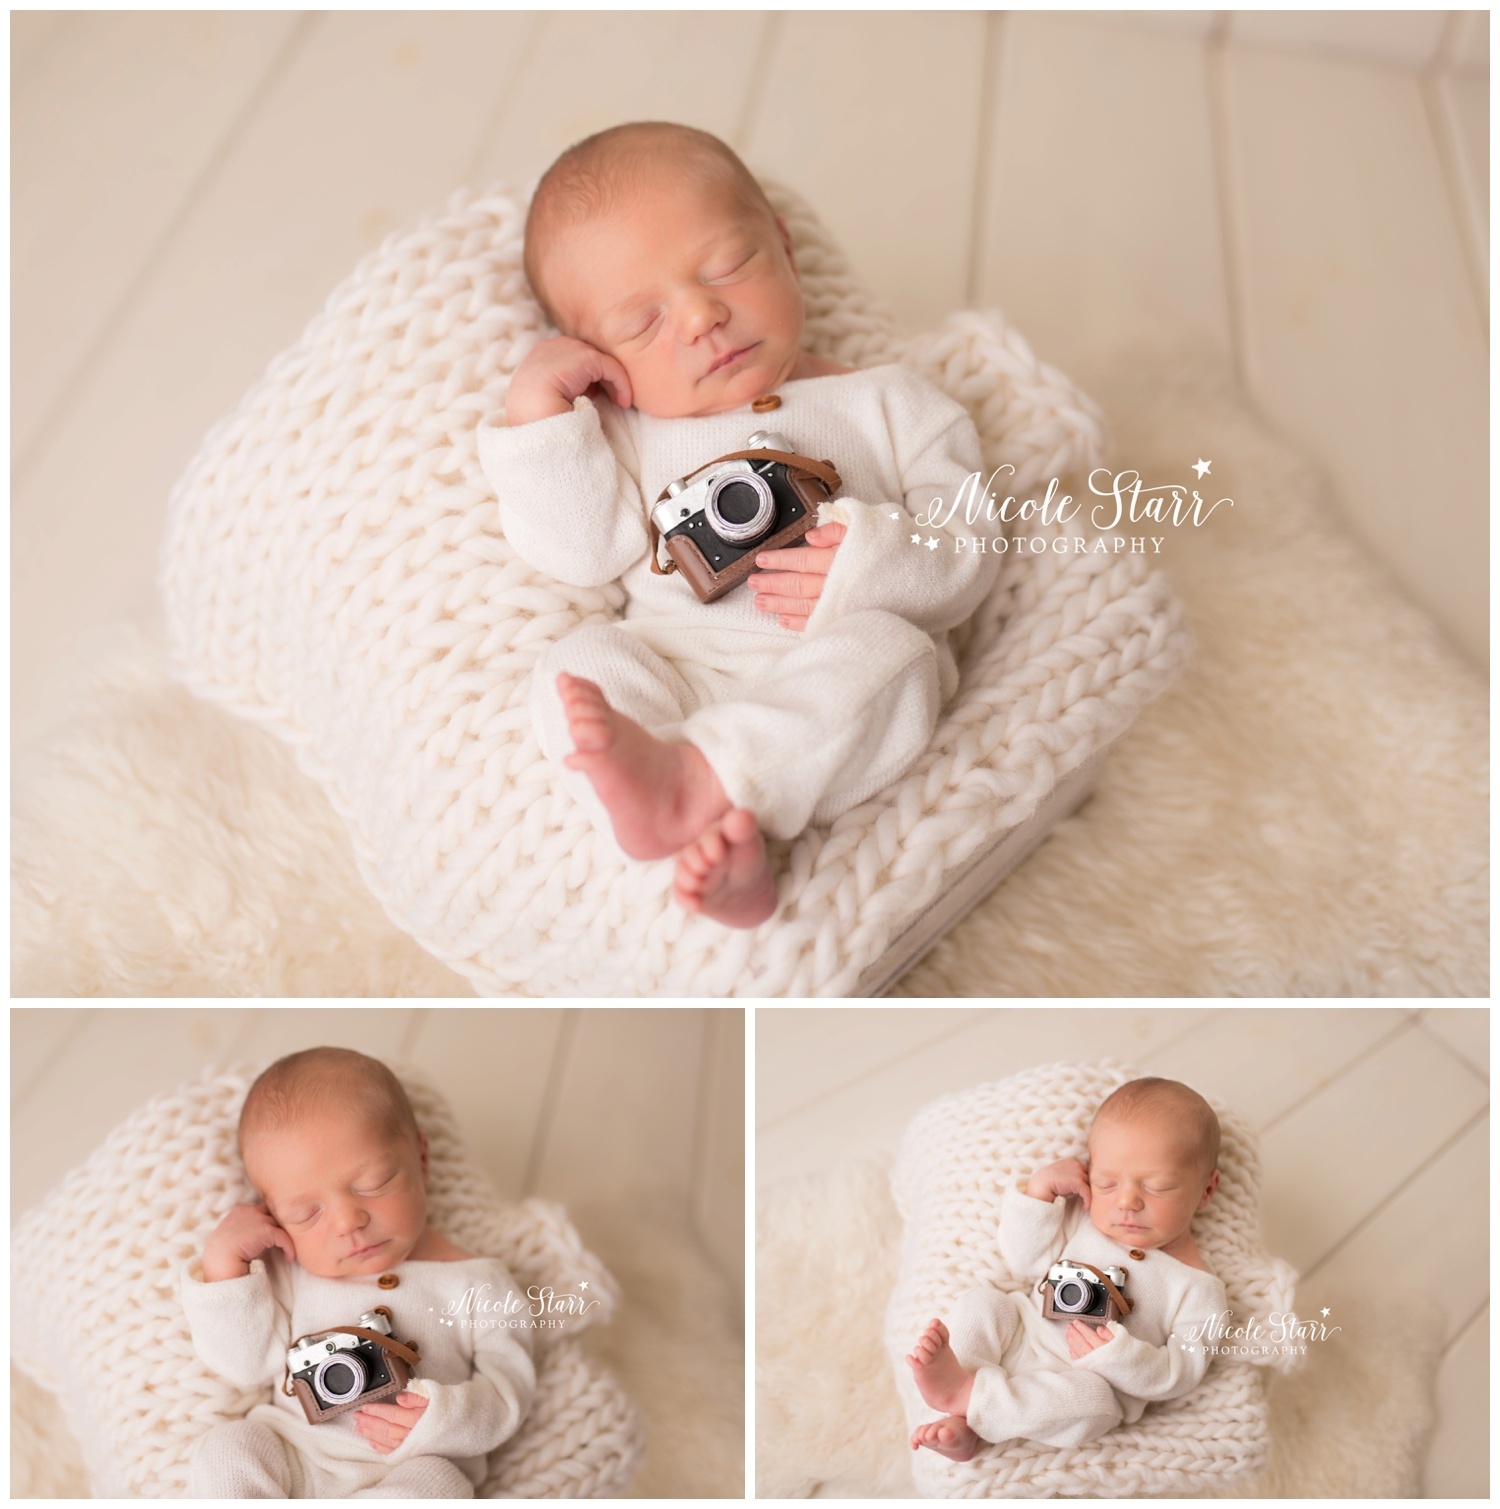 Nicole Starr Photography  |  Saratoga Springs and Boston Newborn Photographer  |  baby with camera prop  |  photographer baby